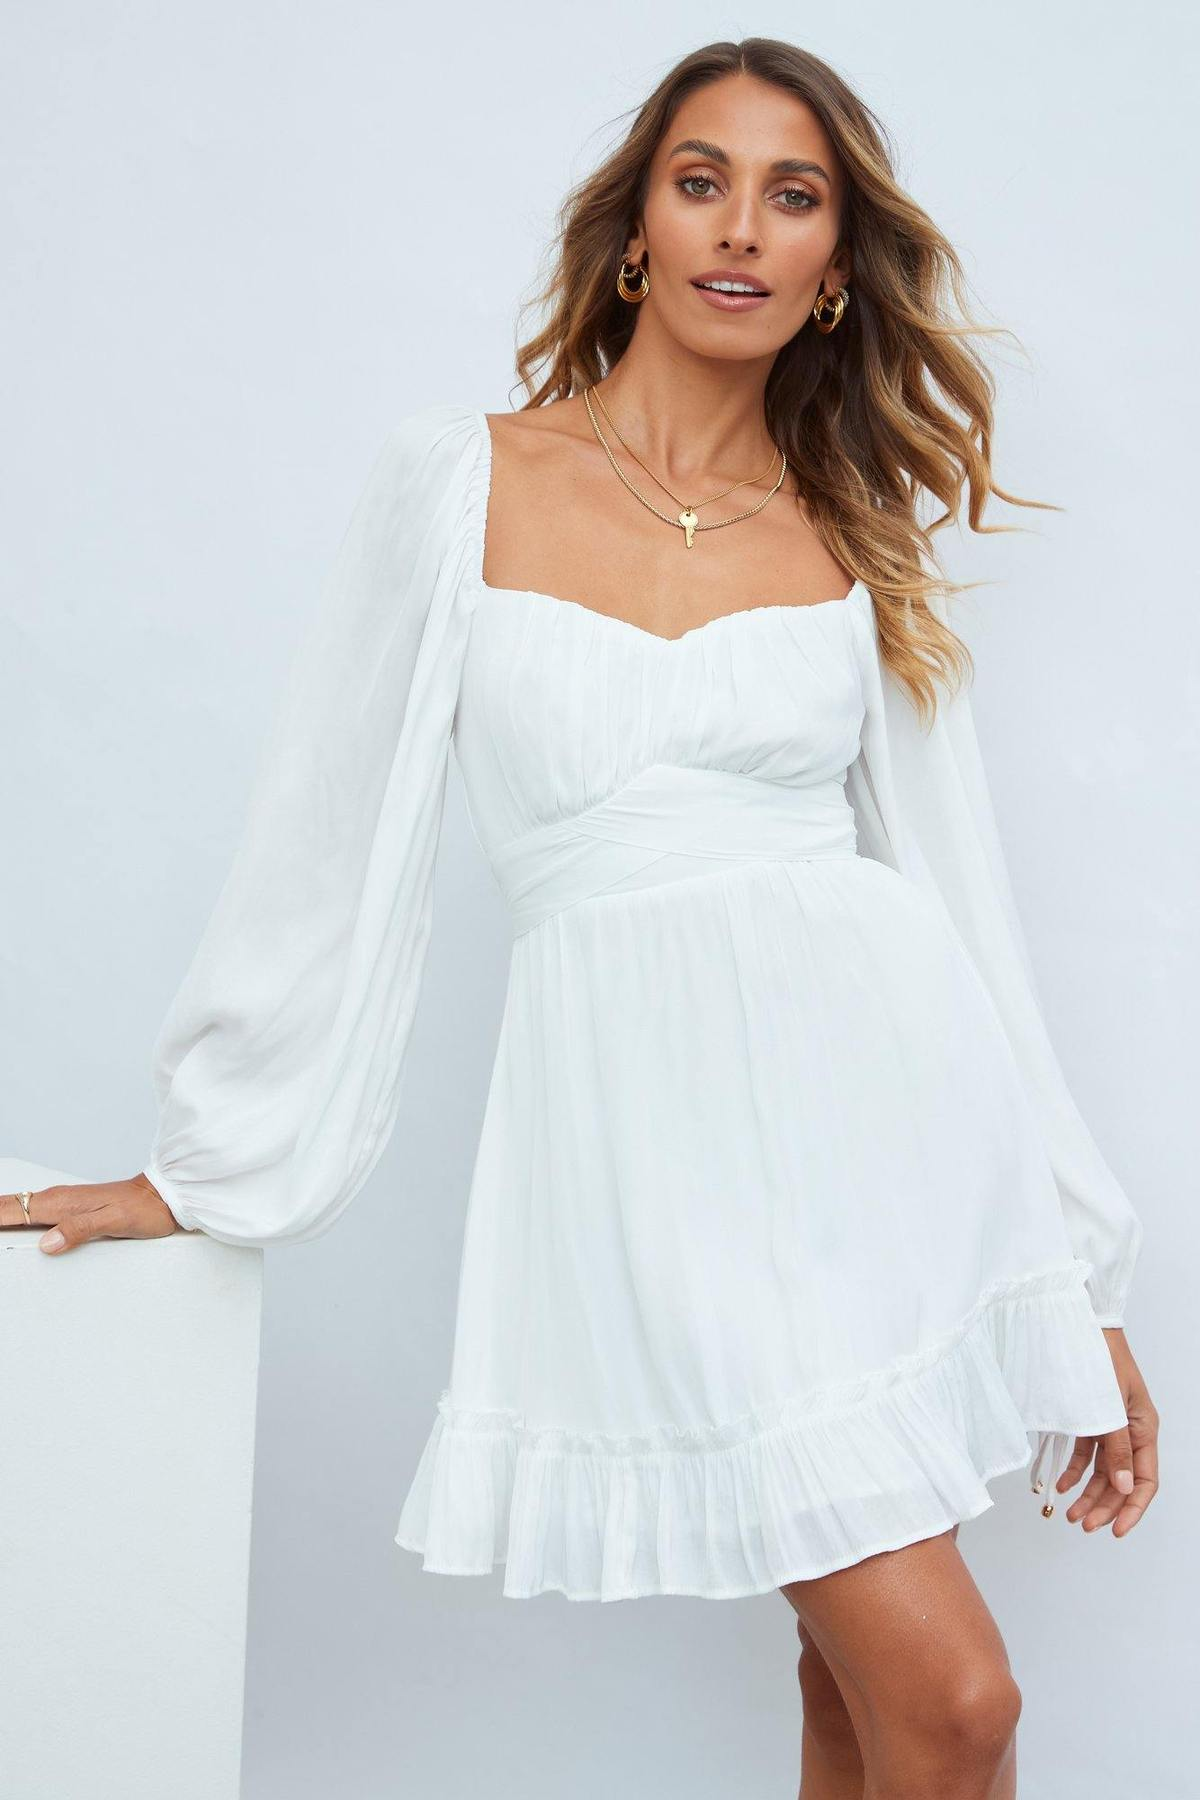 What To Wear To A Celebration Of Life: White dress